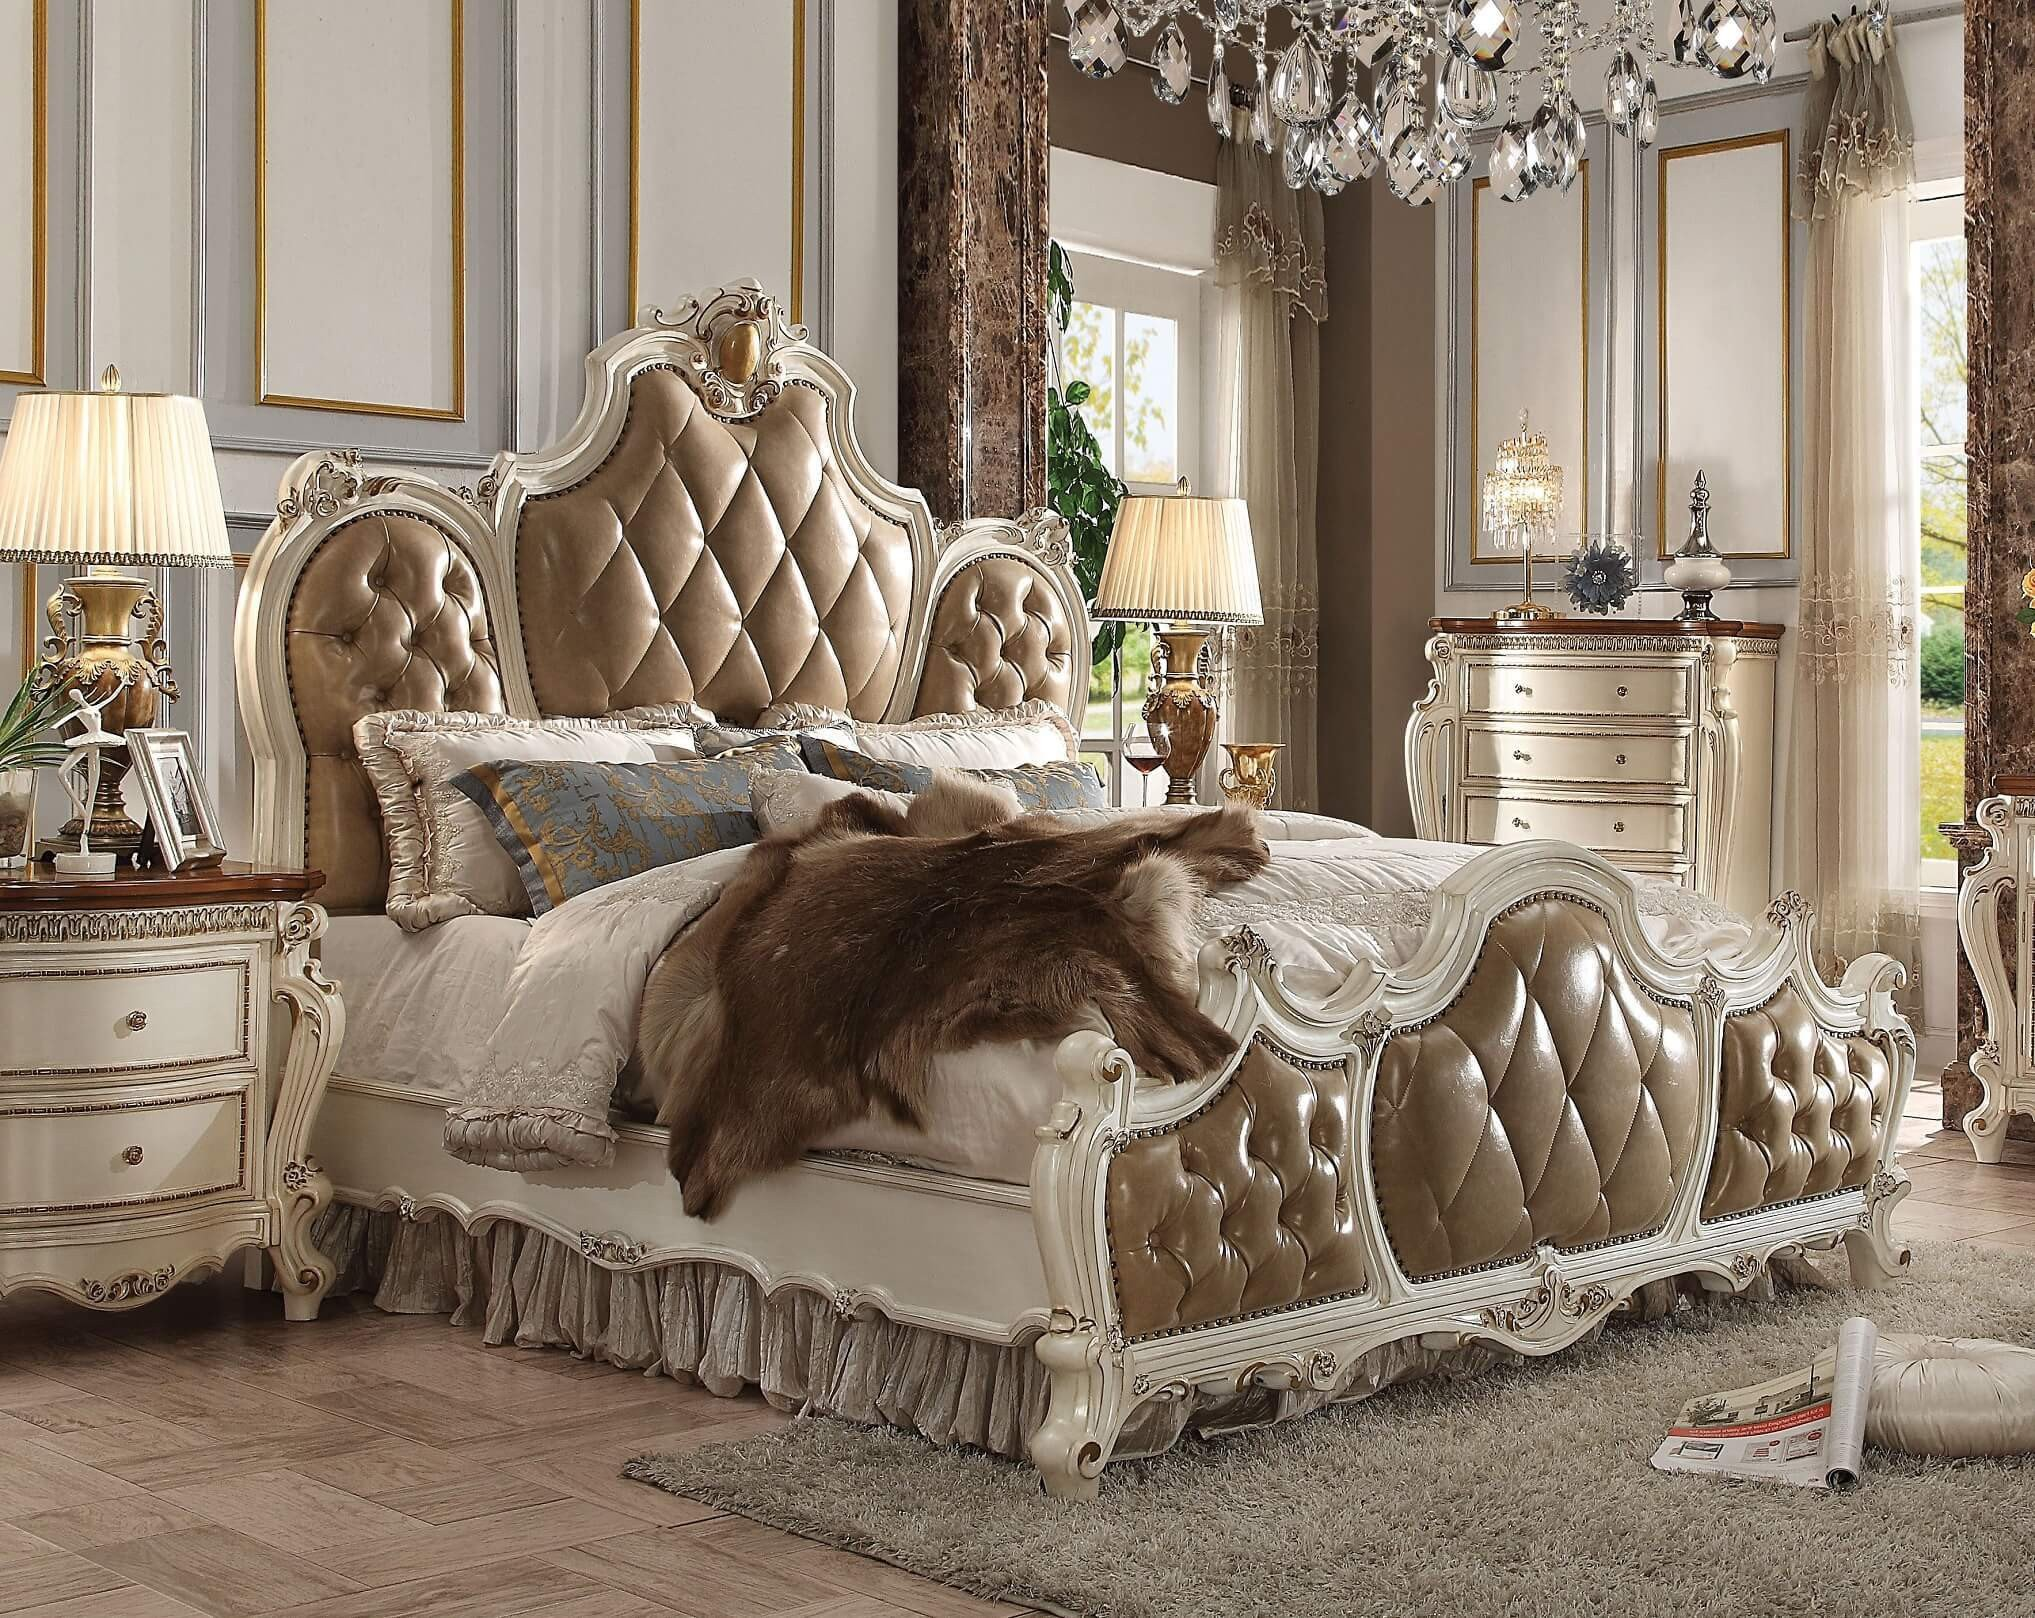 Tufted Queen Bedroom Set Luxury Picardy Leather Upholstered Bed Acme Q